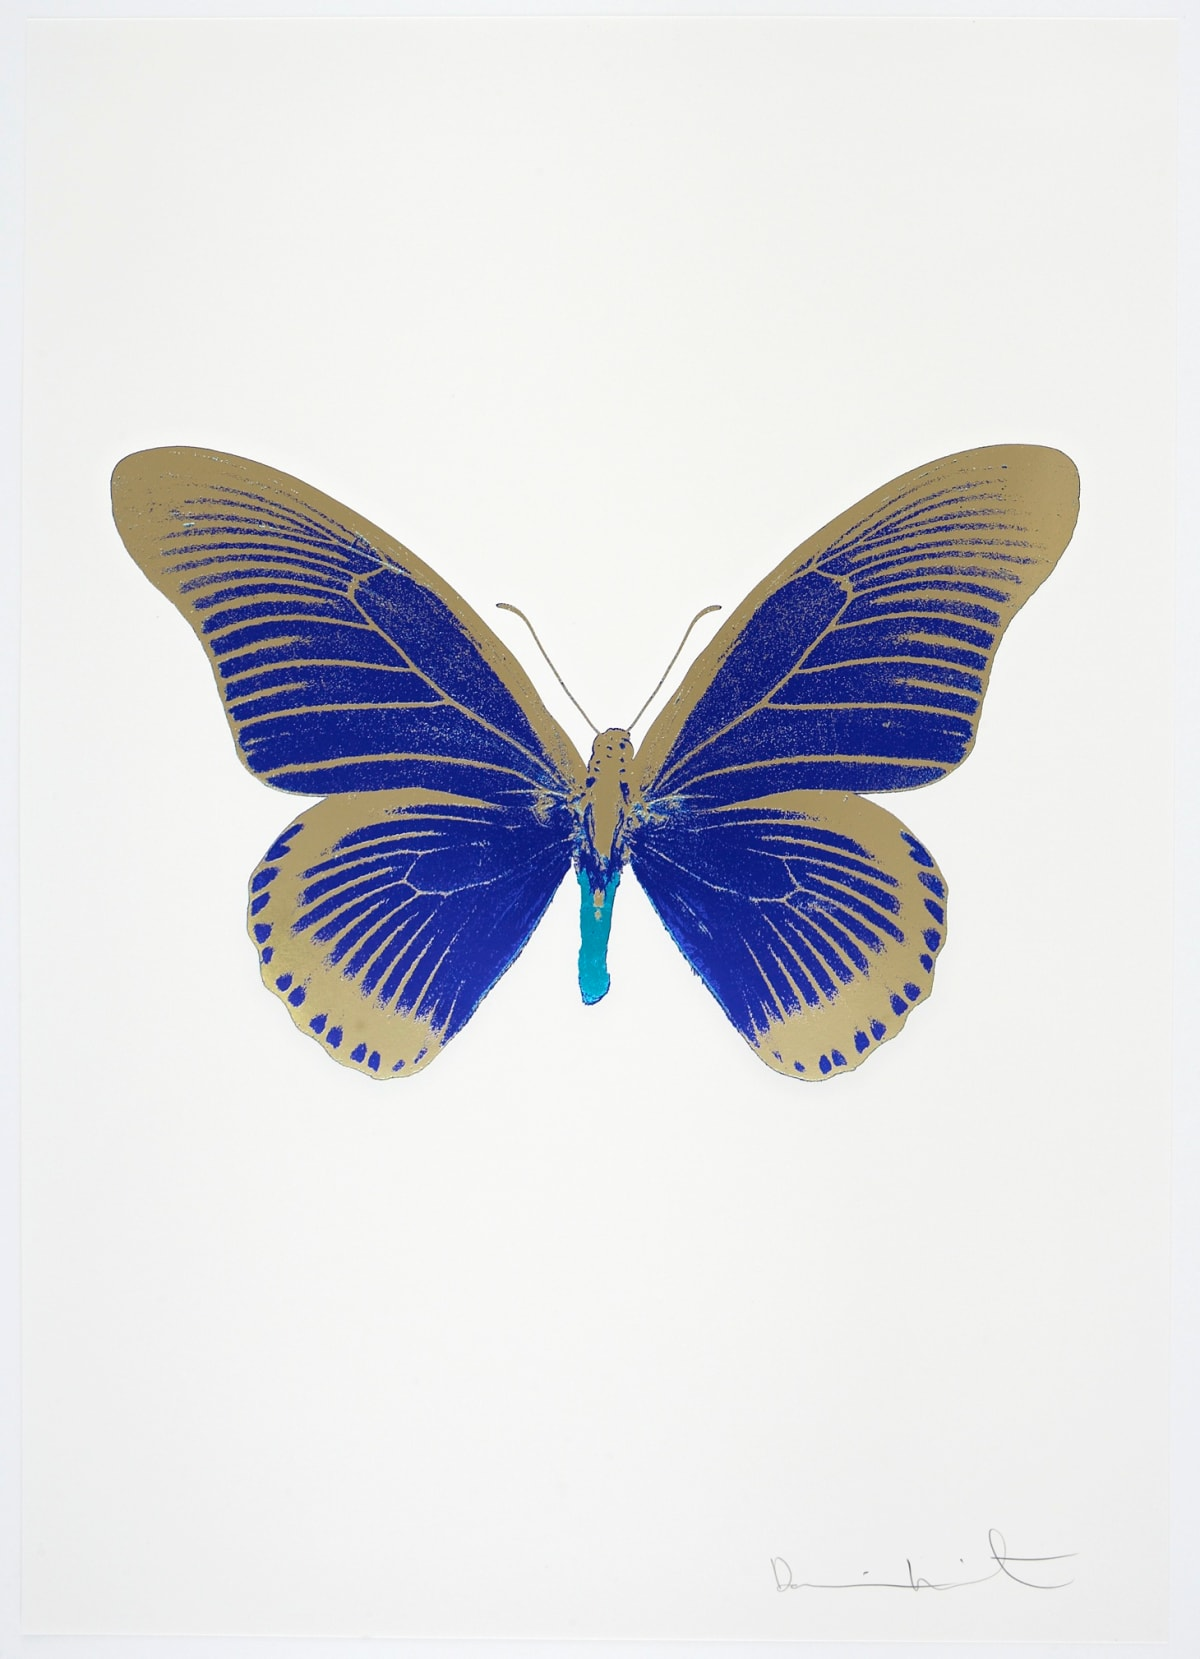 Damien Hirst The Souls IV - Westminster Blue/Cool Gold/Topaz Damien Hirst butterfly foil print for sale Damien Hirst print for sale , 2010 3 colour foil block on 300gsm Arches 88 archival paper. Signed and numbered. Published by Paul Stolper and Other Criteria 72 x 51cm OC7987 / 1418-10 Edition of 15